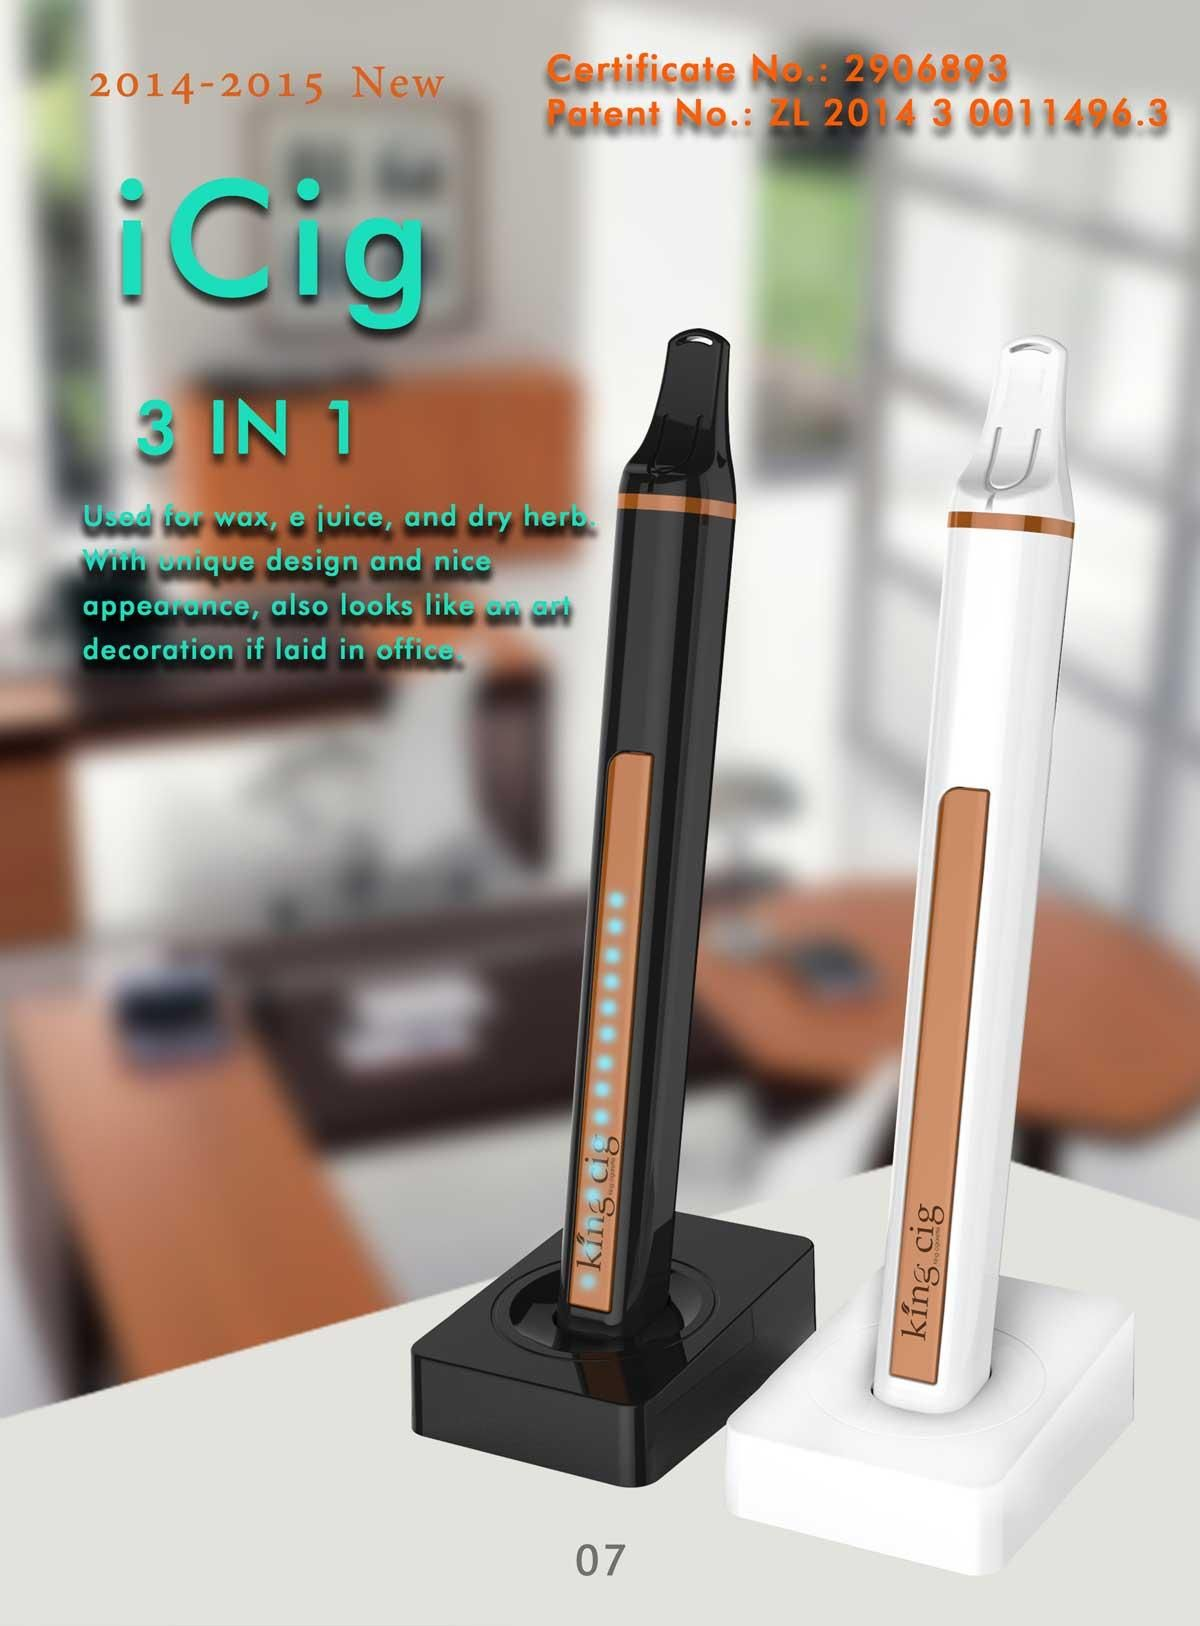 New ecigs iCig 3in1 vaporizer for e juice/wax/dry herb